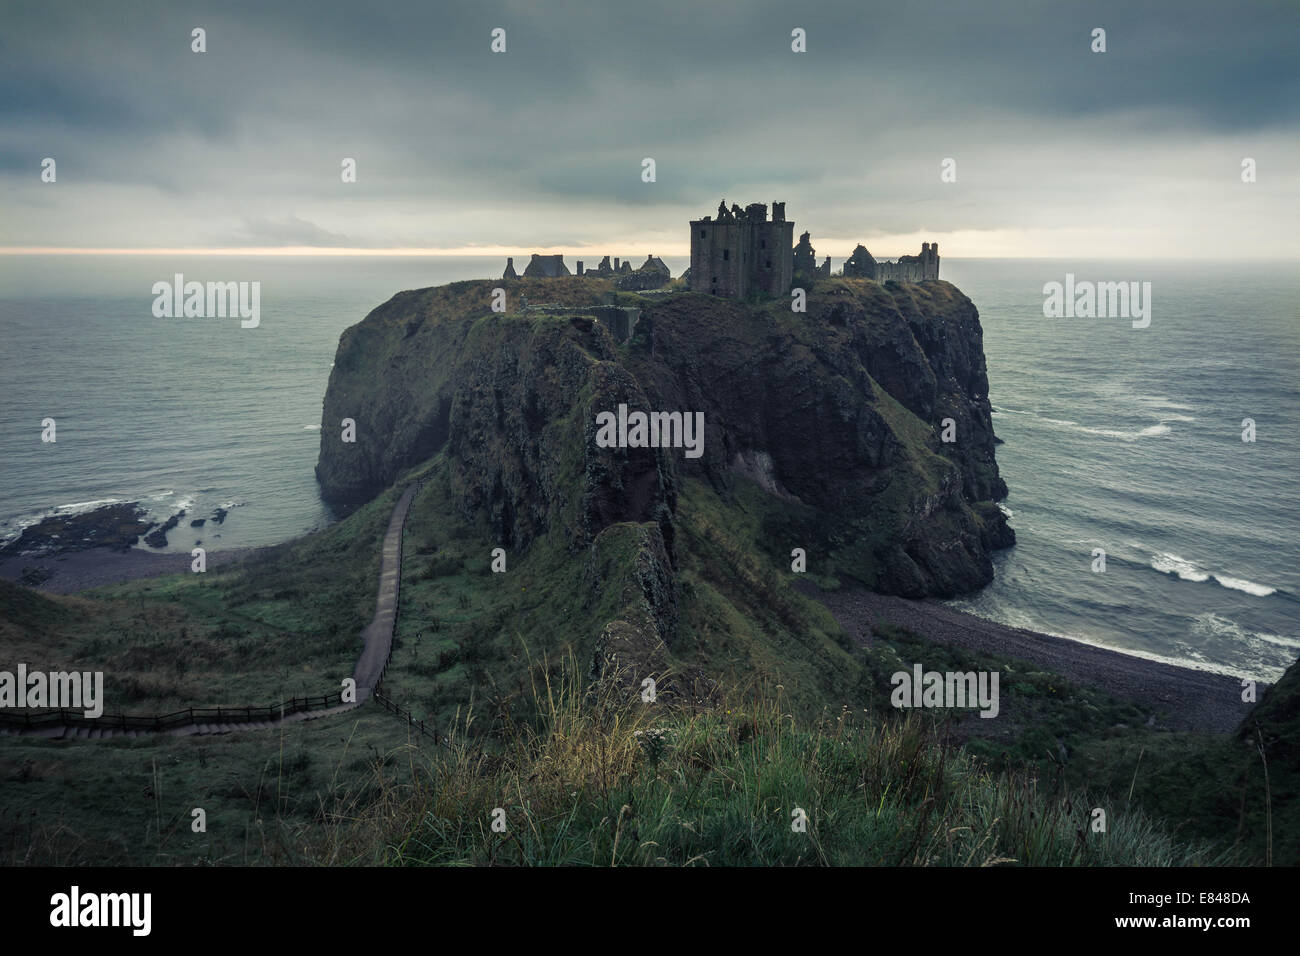 Misty August dawn at Dunnottar Castle, Stonehaven, Aberdeenshire. - Stock Image